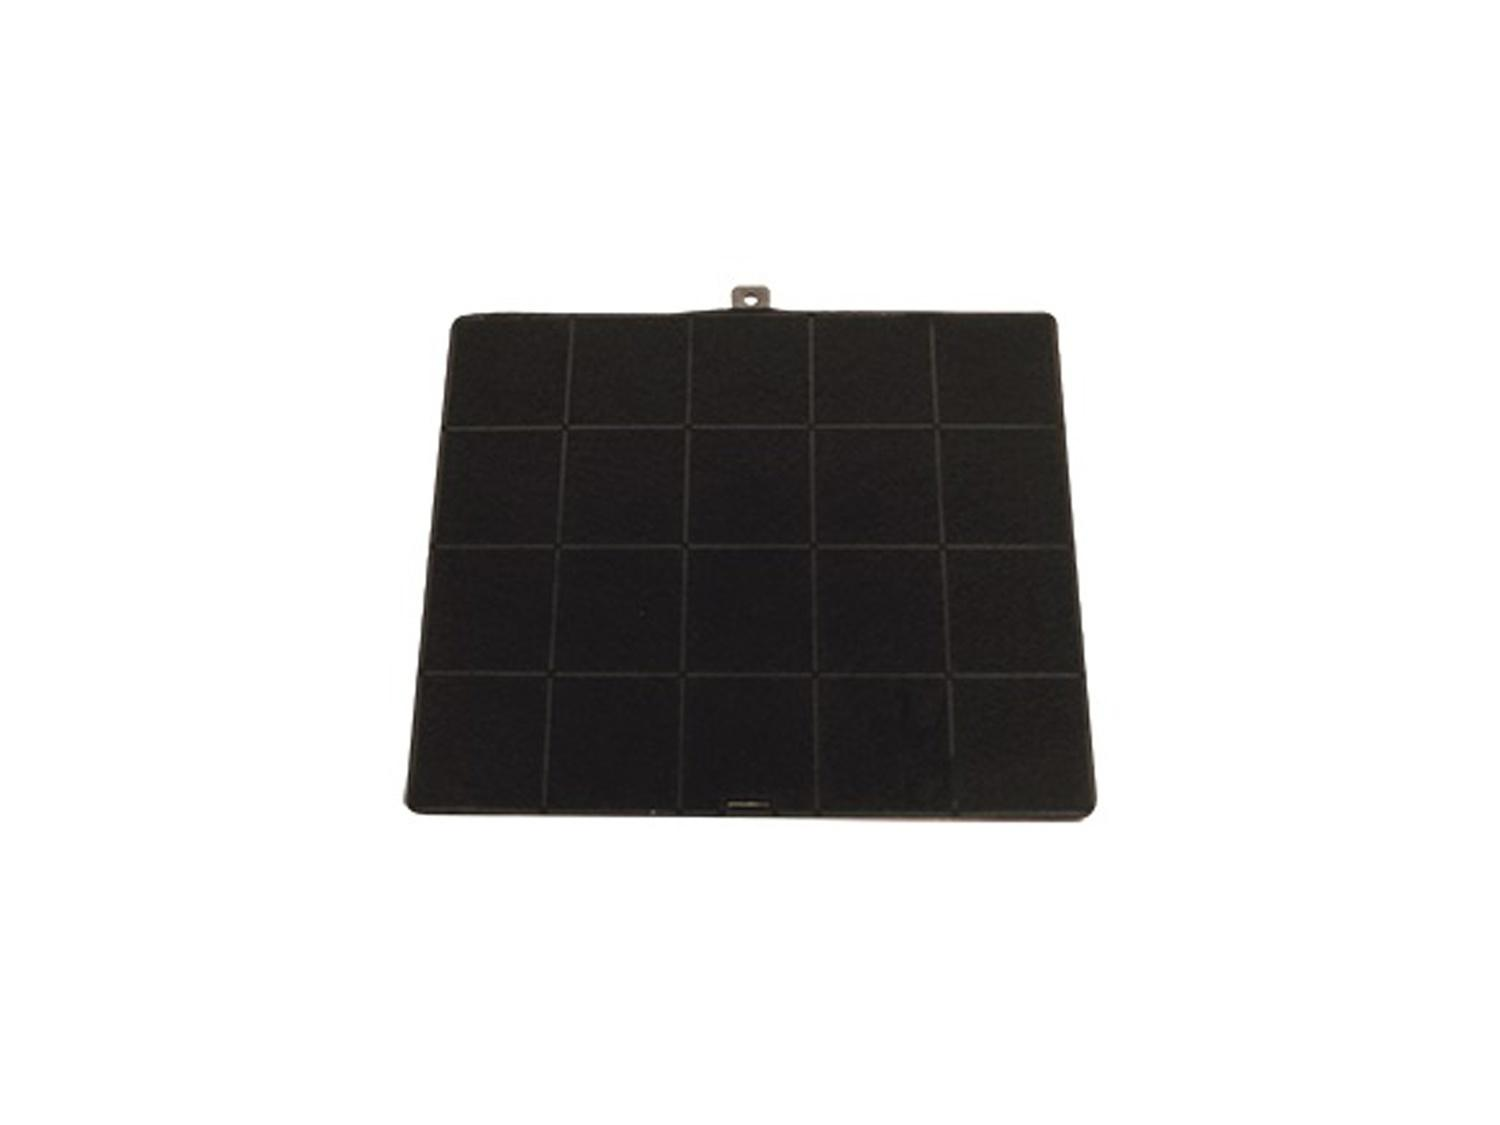 Charcoal Filter Kit for CONX/14, HERX/14 and HERTX models Nero